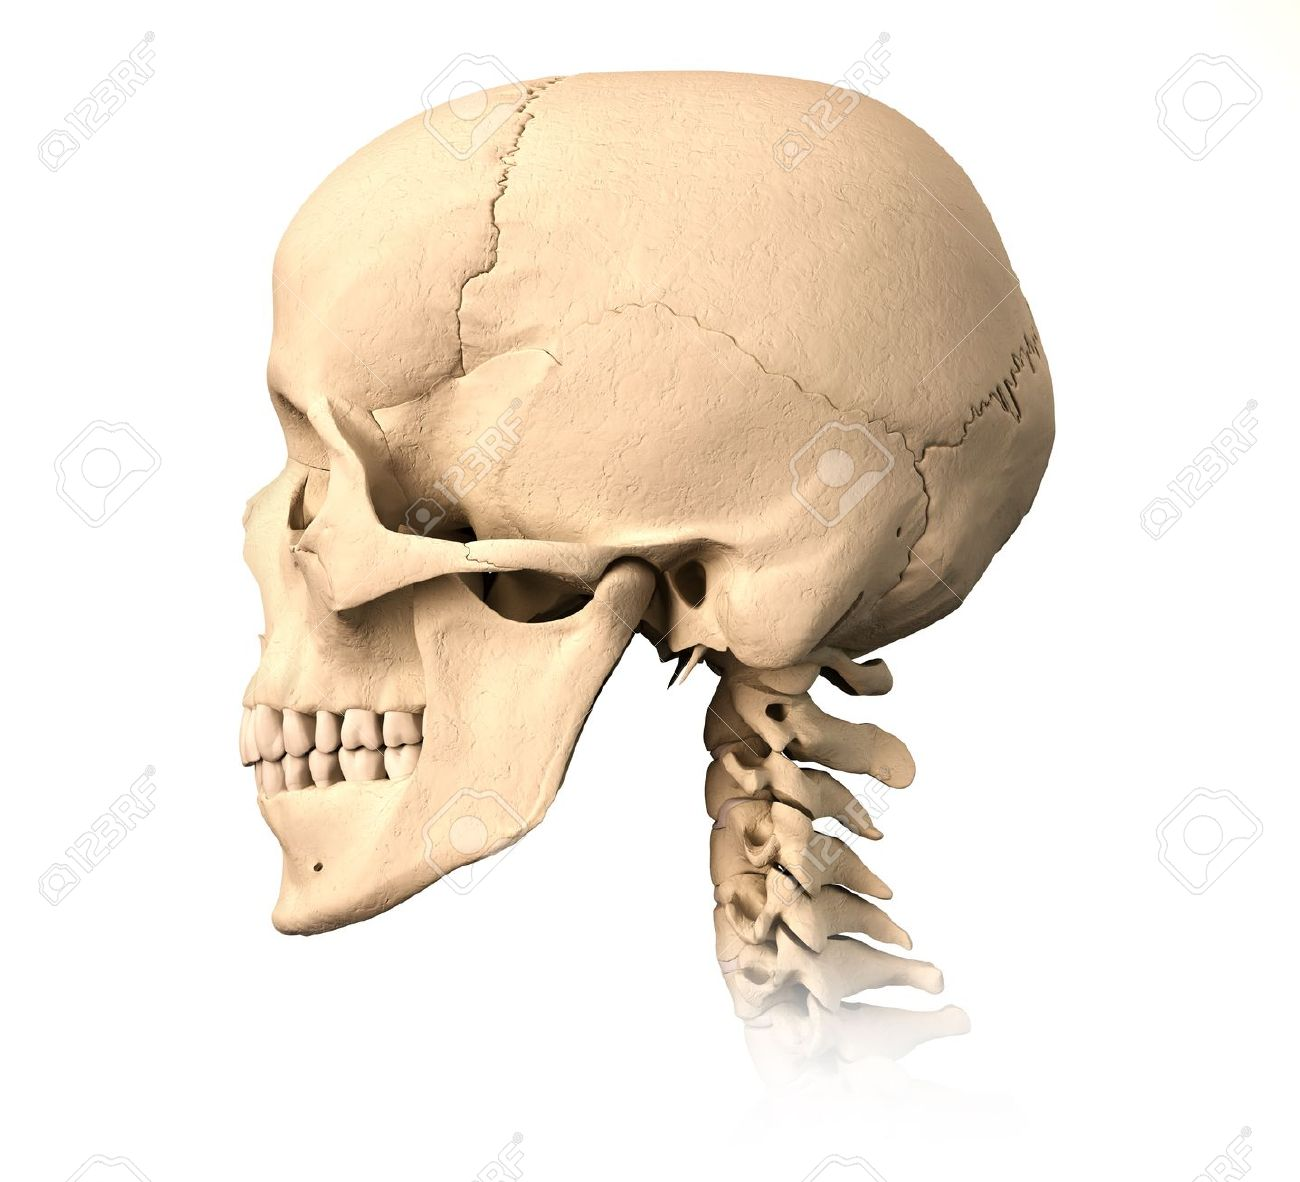 Very Detailed And Scientifically Correct Human Skull Side View